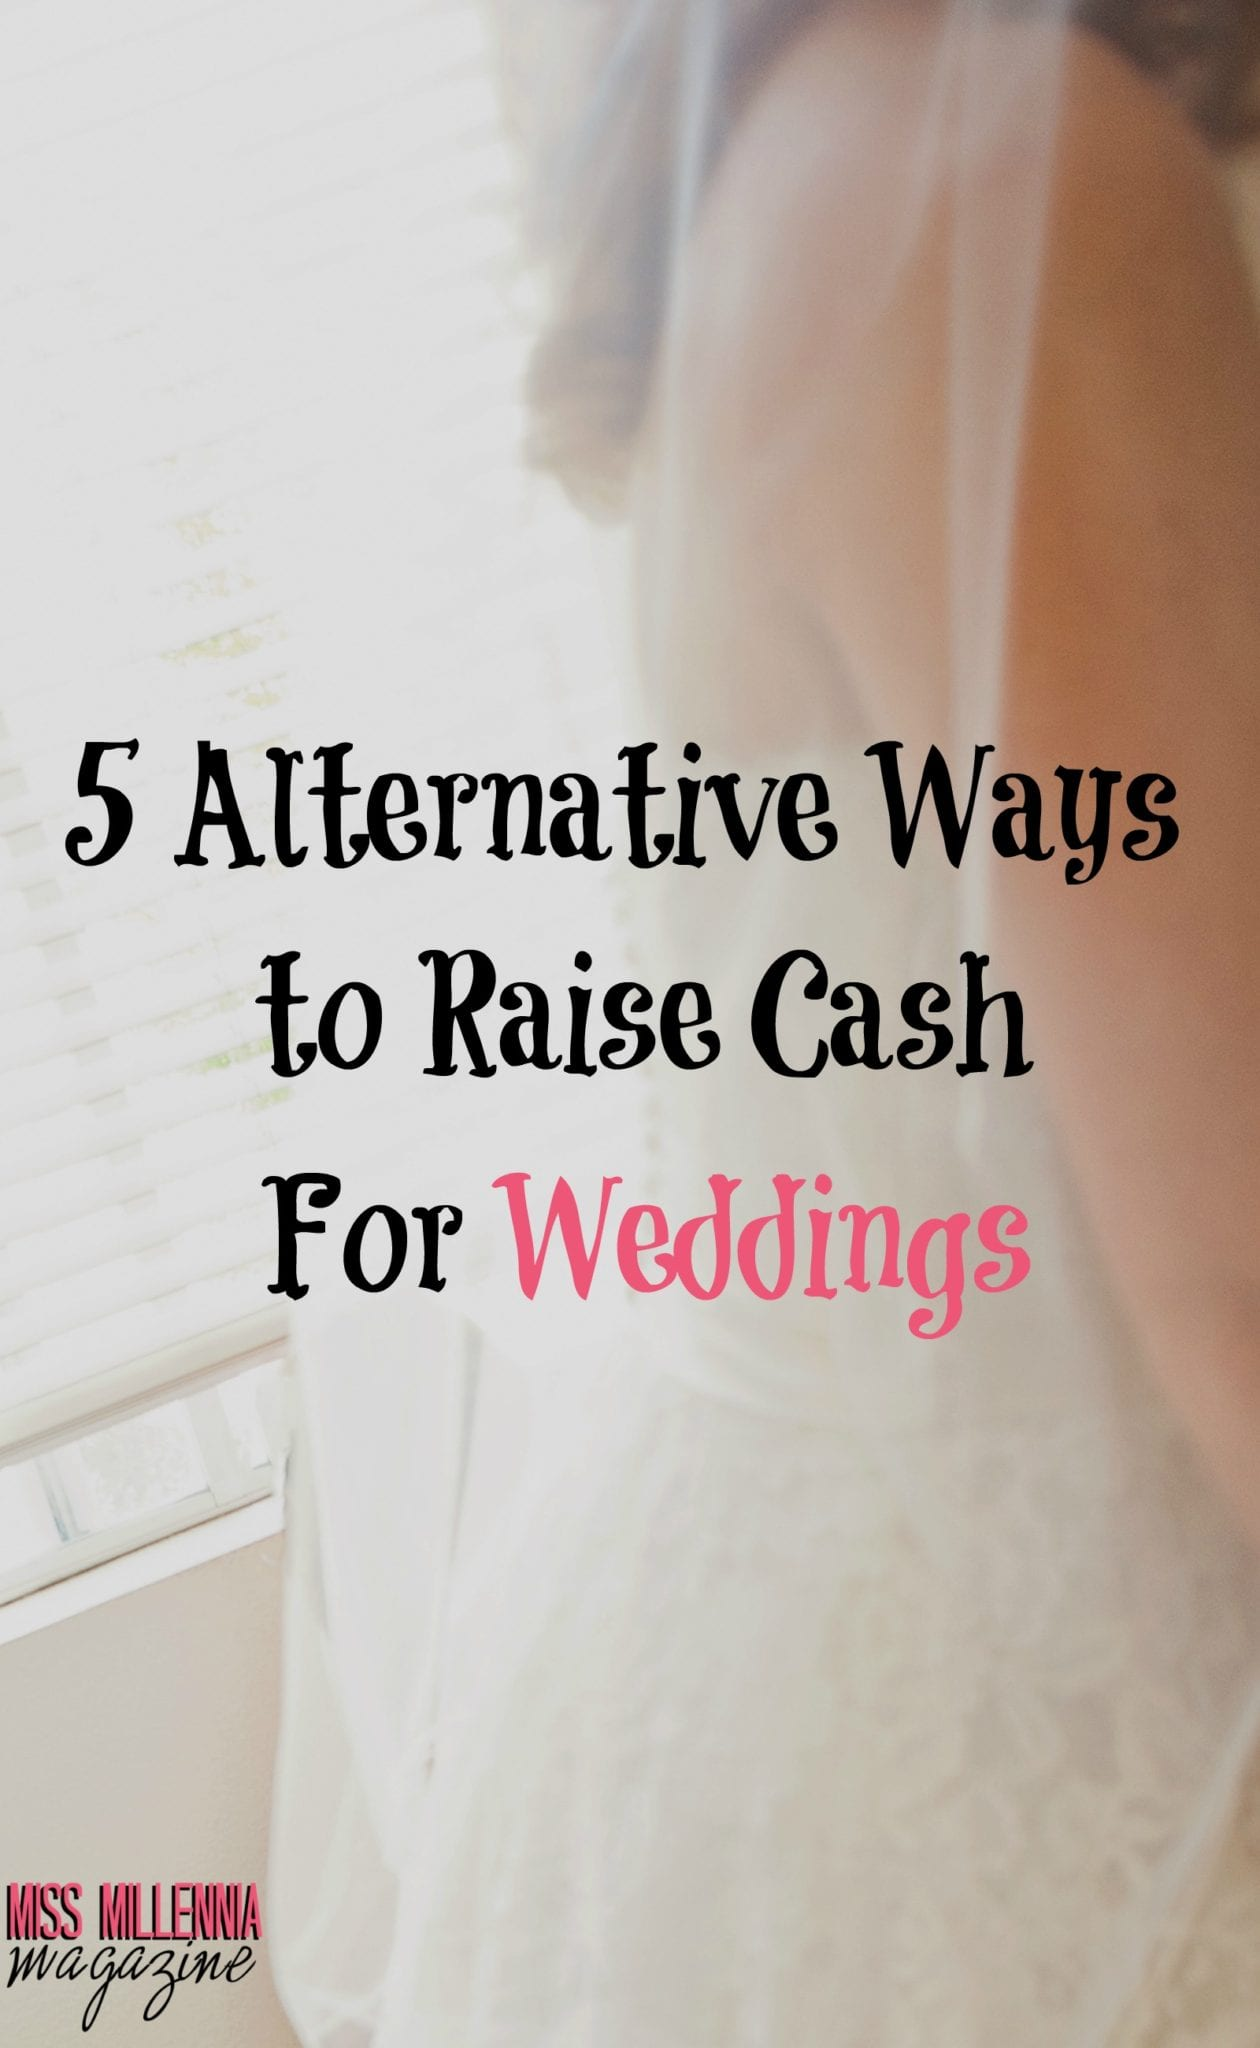 5-alternative-ways-to-raise-cash-for-weddings